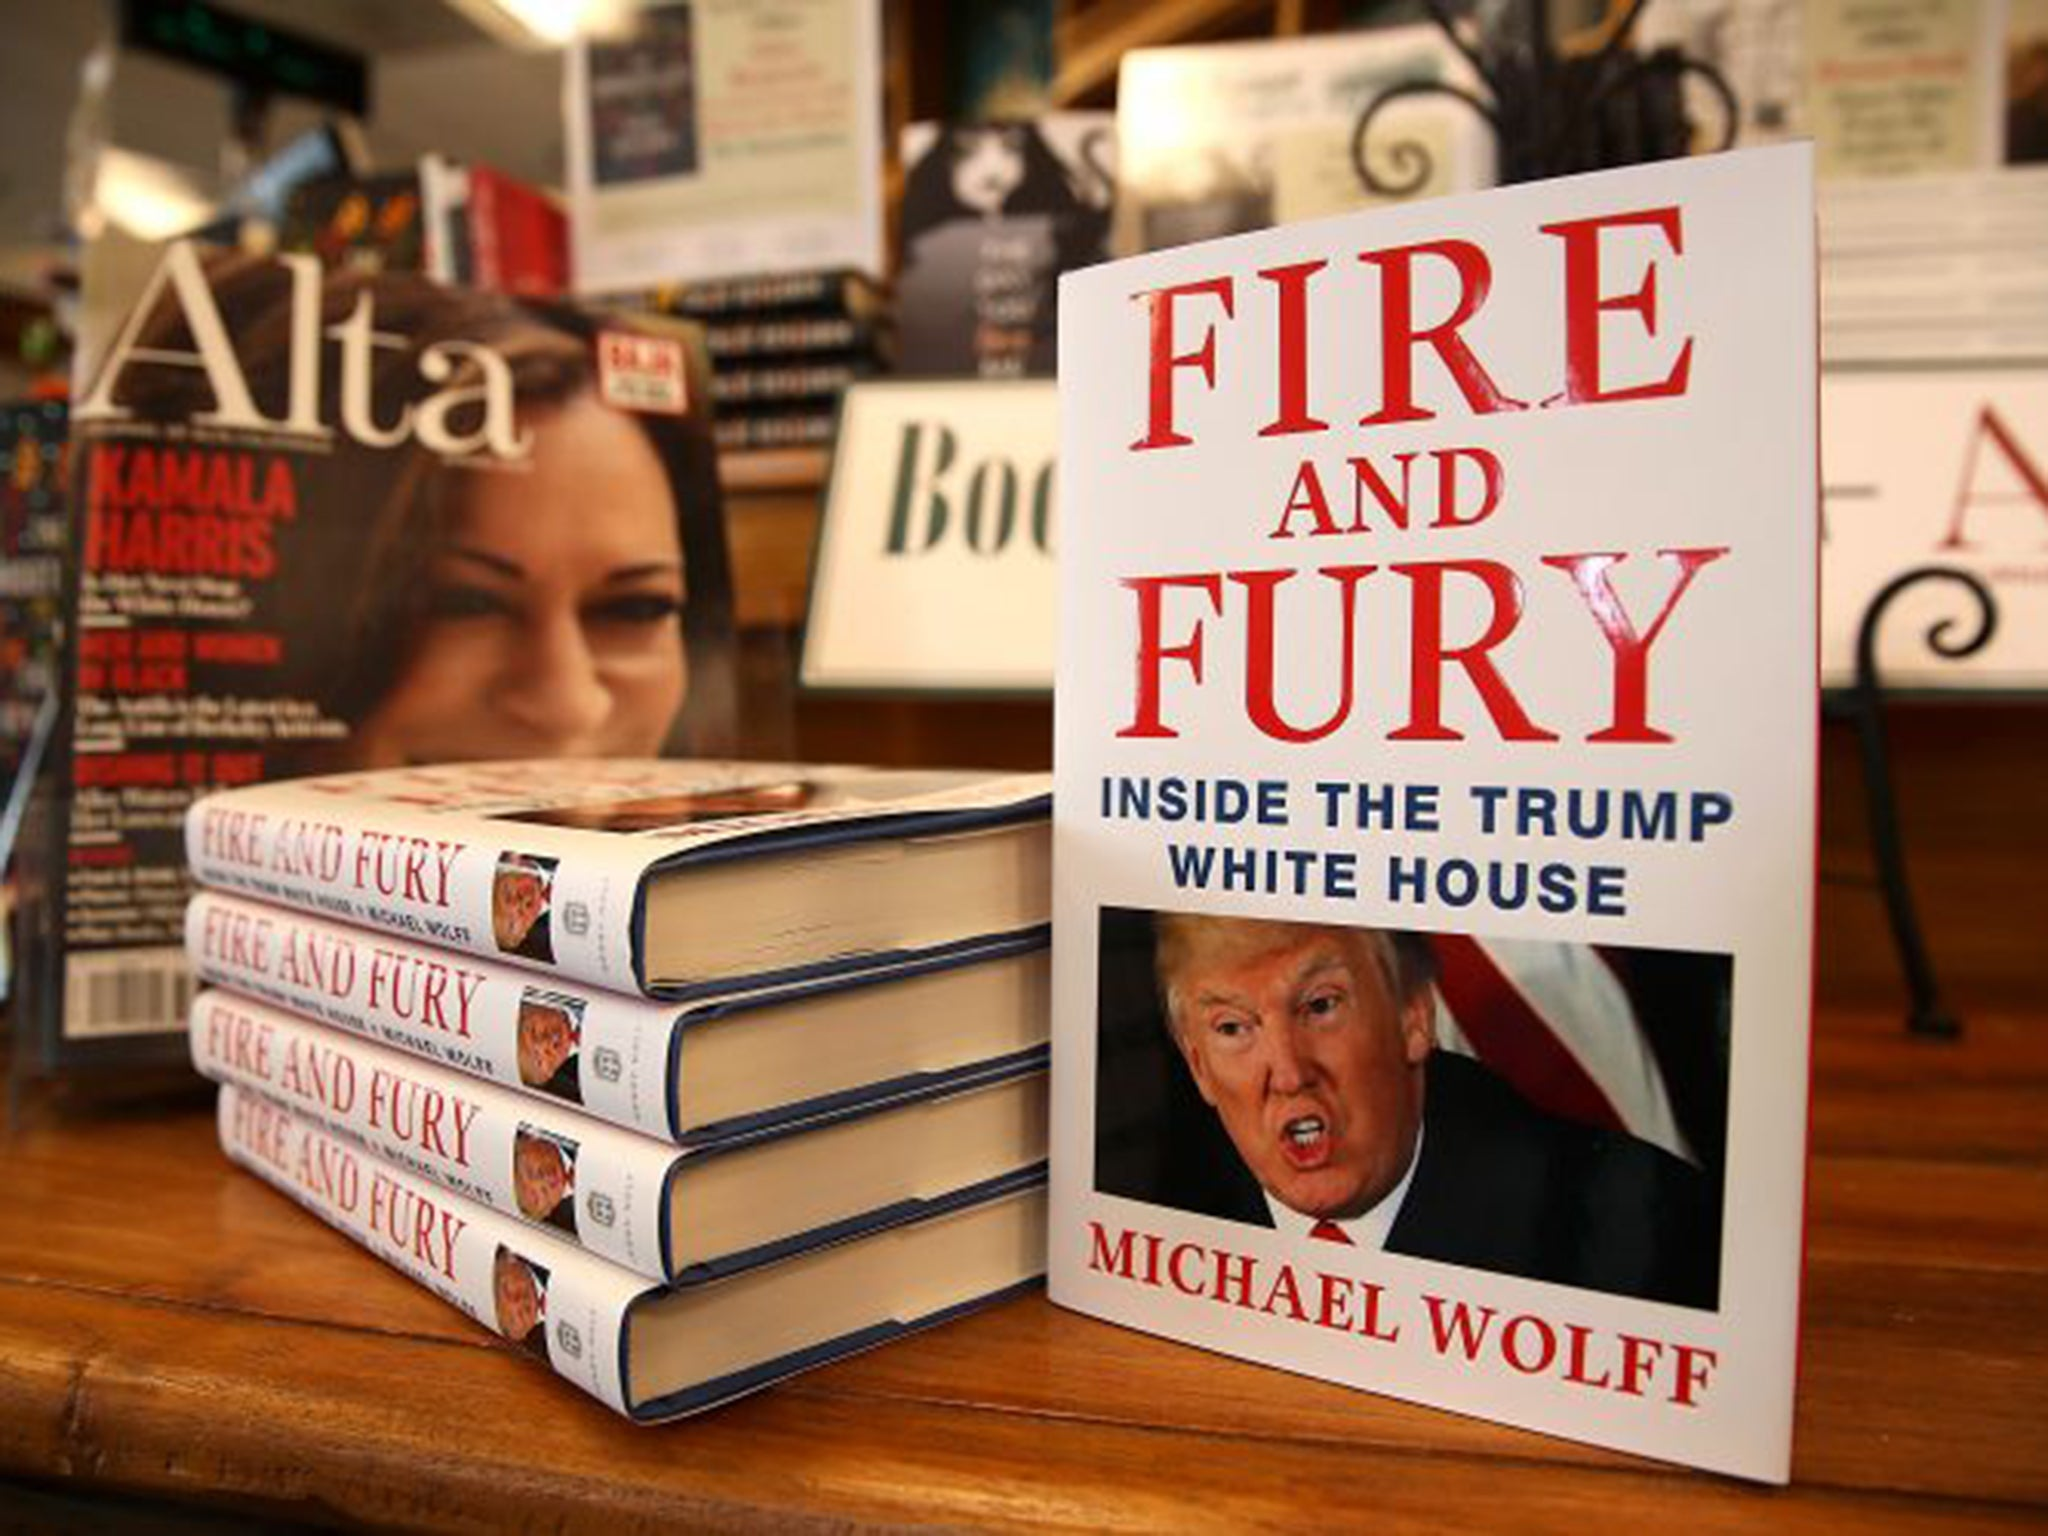 Fire and Fury on track to outsell Donald Trump's The Art of the Deal